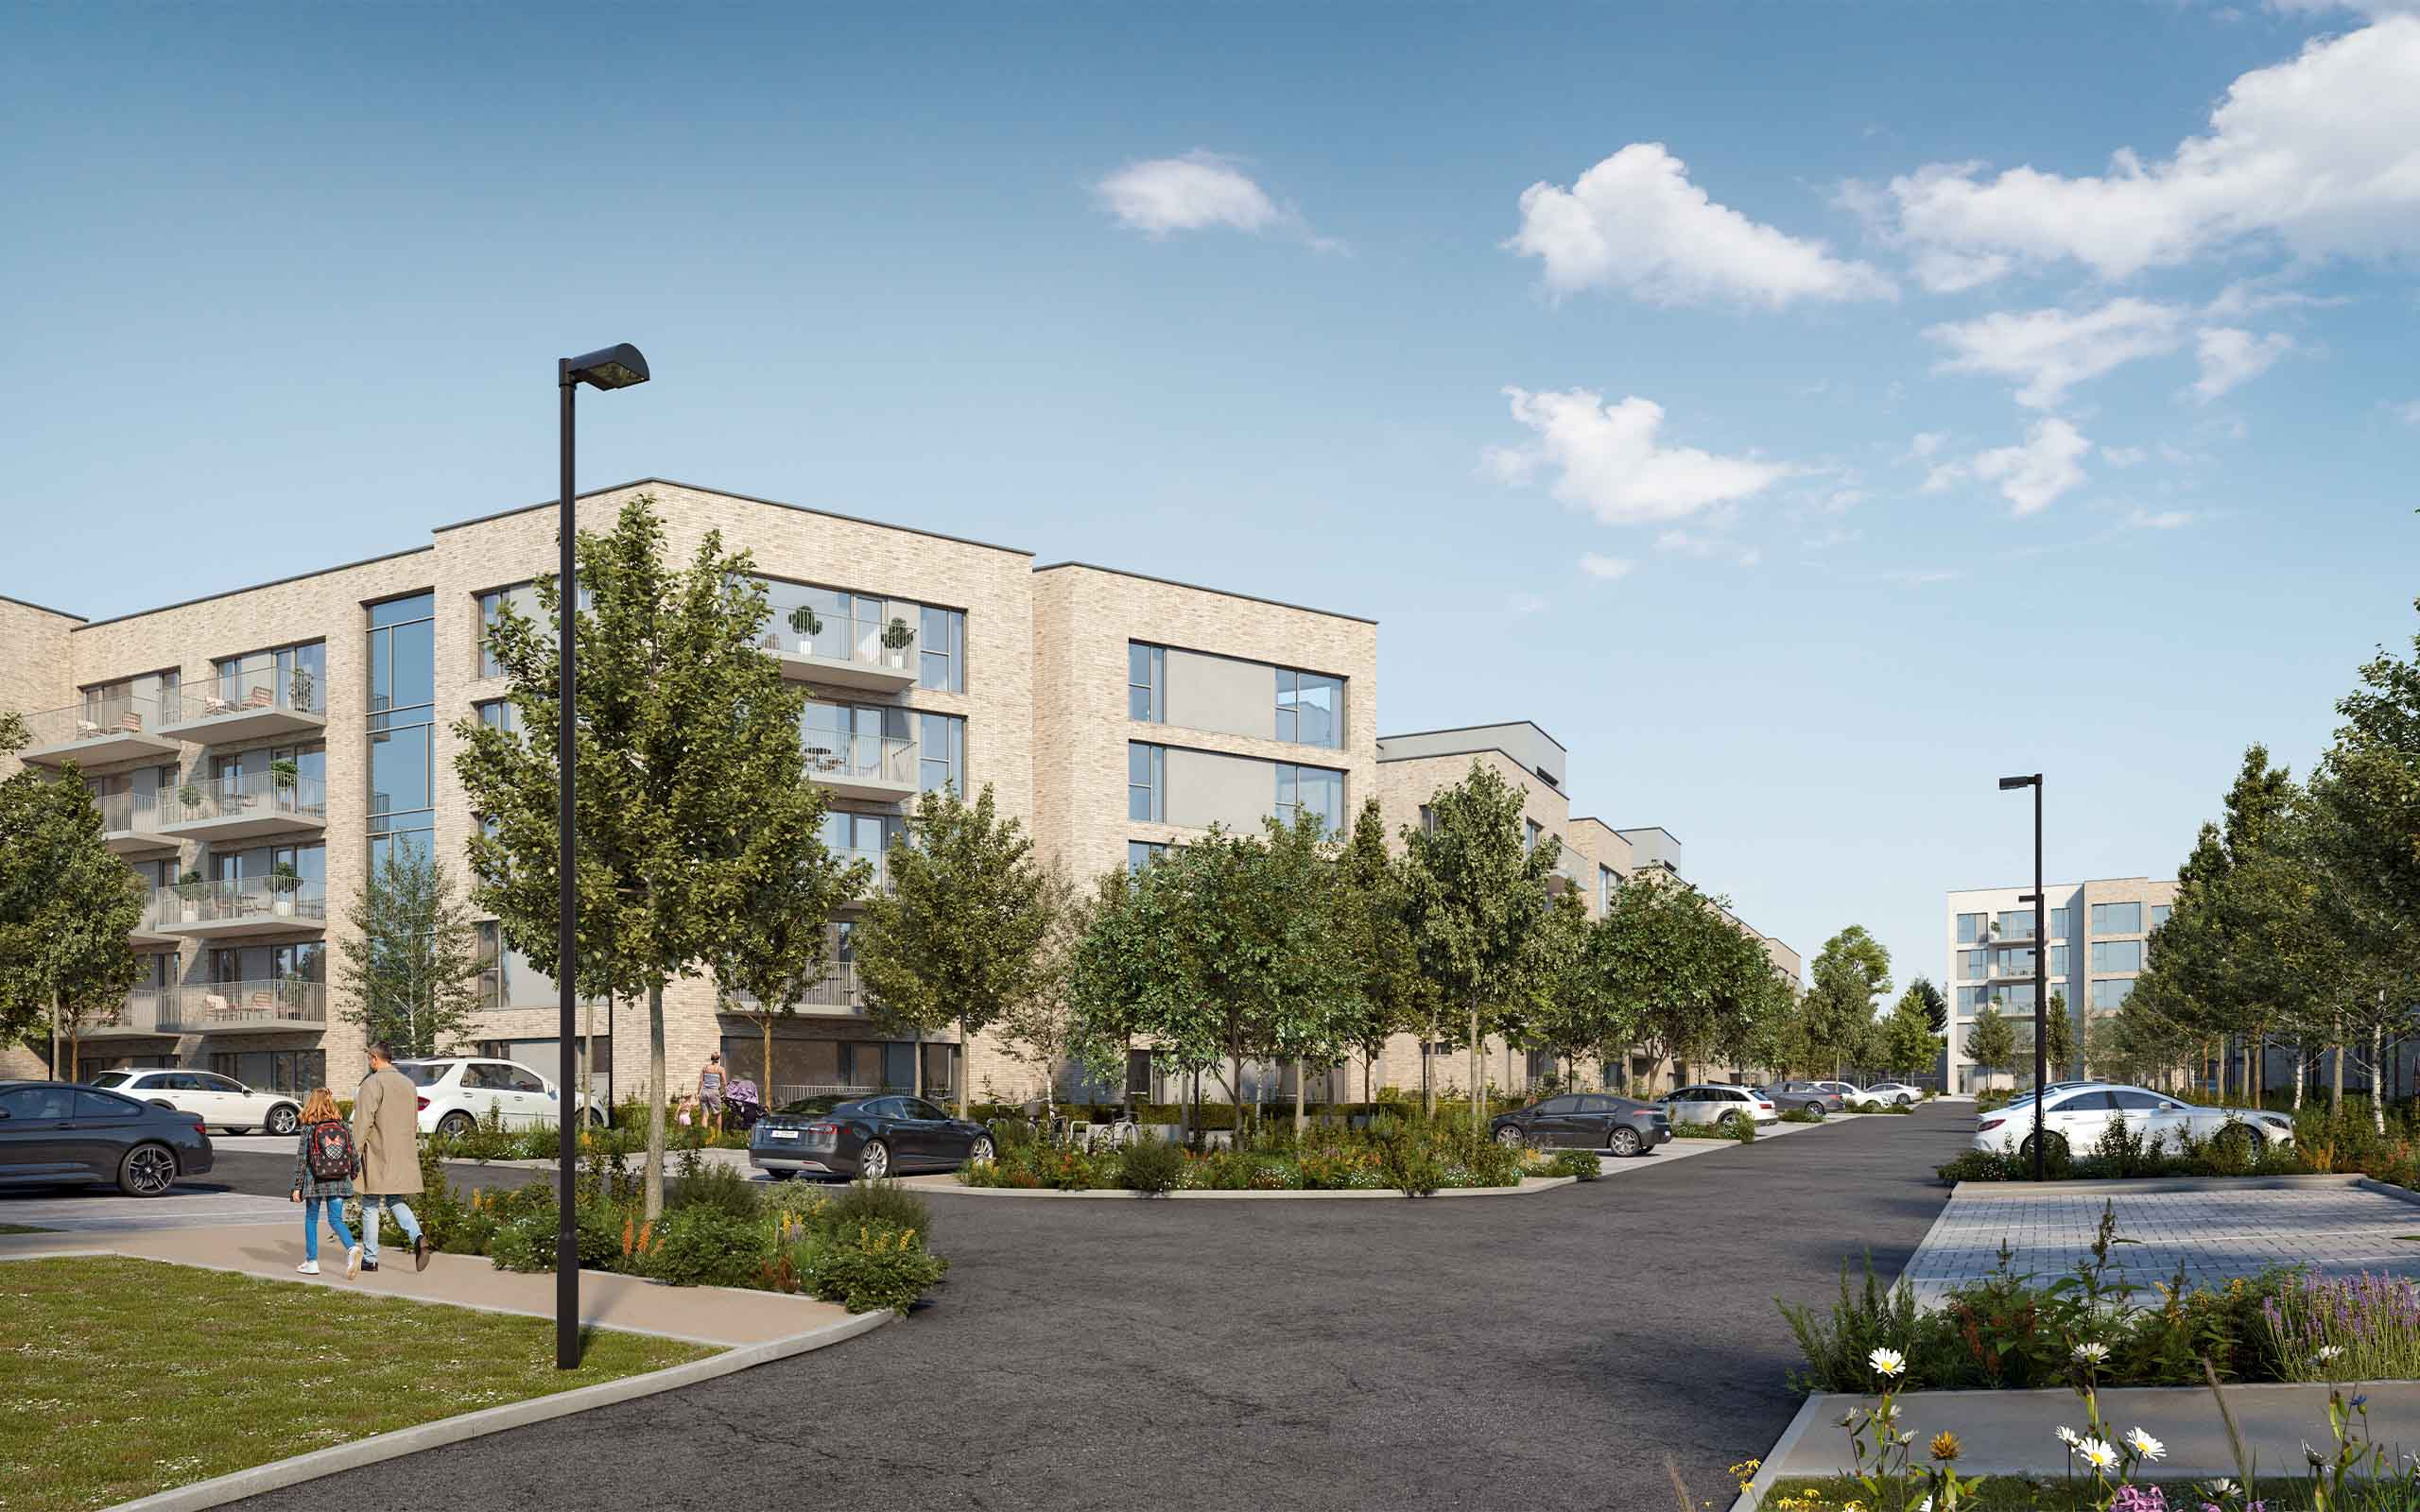 Architectural CGI of SHD in Whitepines, Dublin 16